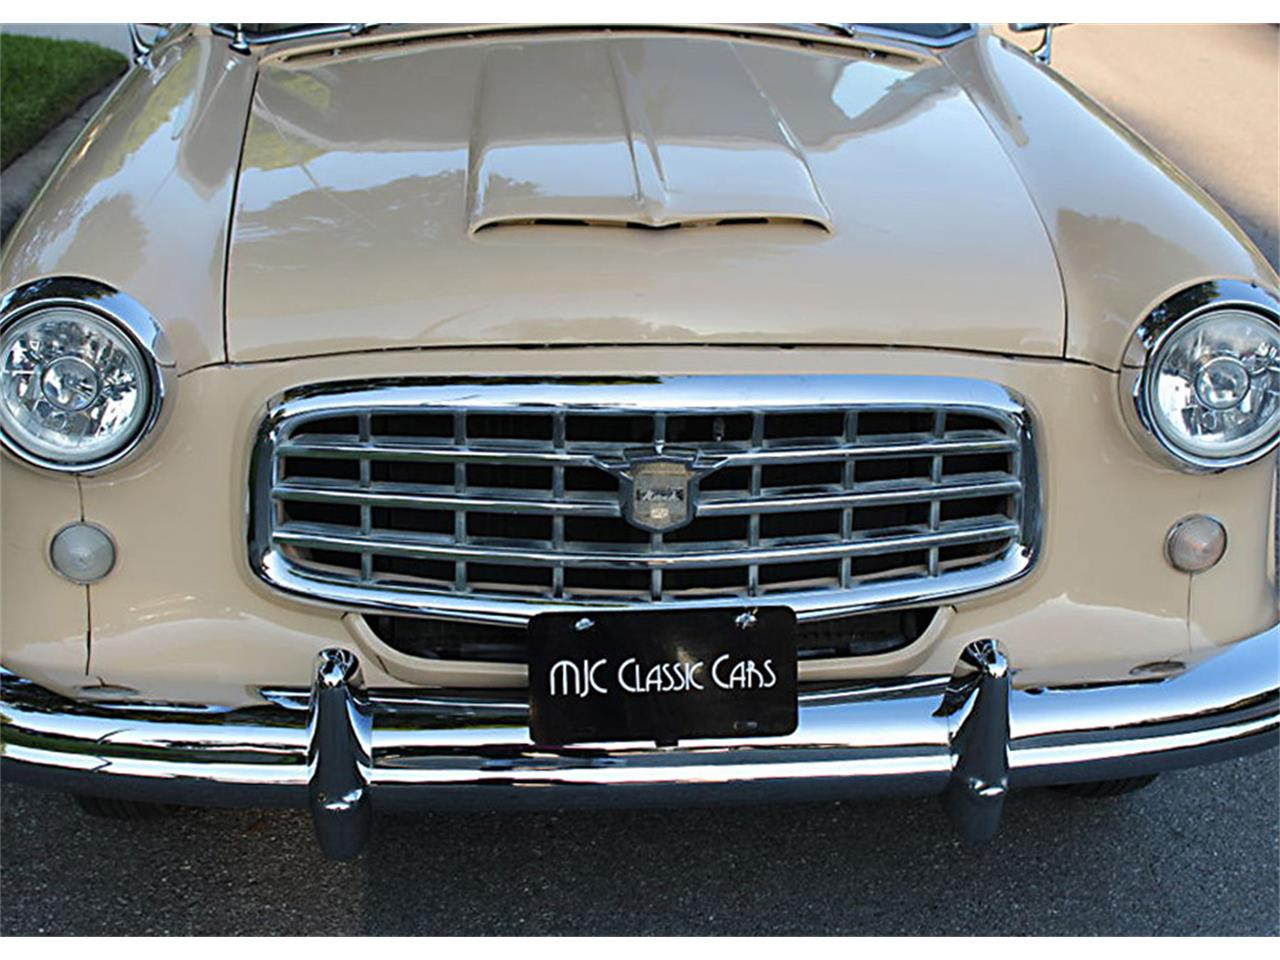 Large Picture of Classic 1955 Rambler - $14,500.00 Offered by MJC Classic Cars - PUZO